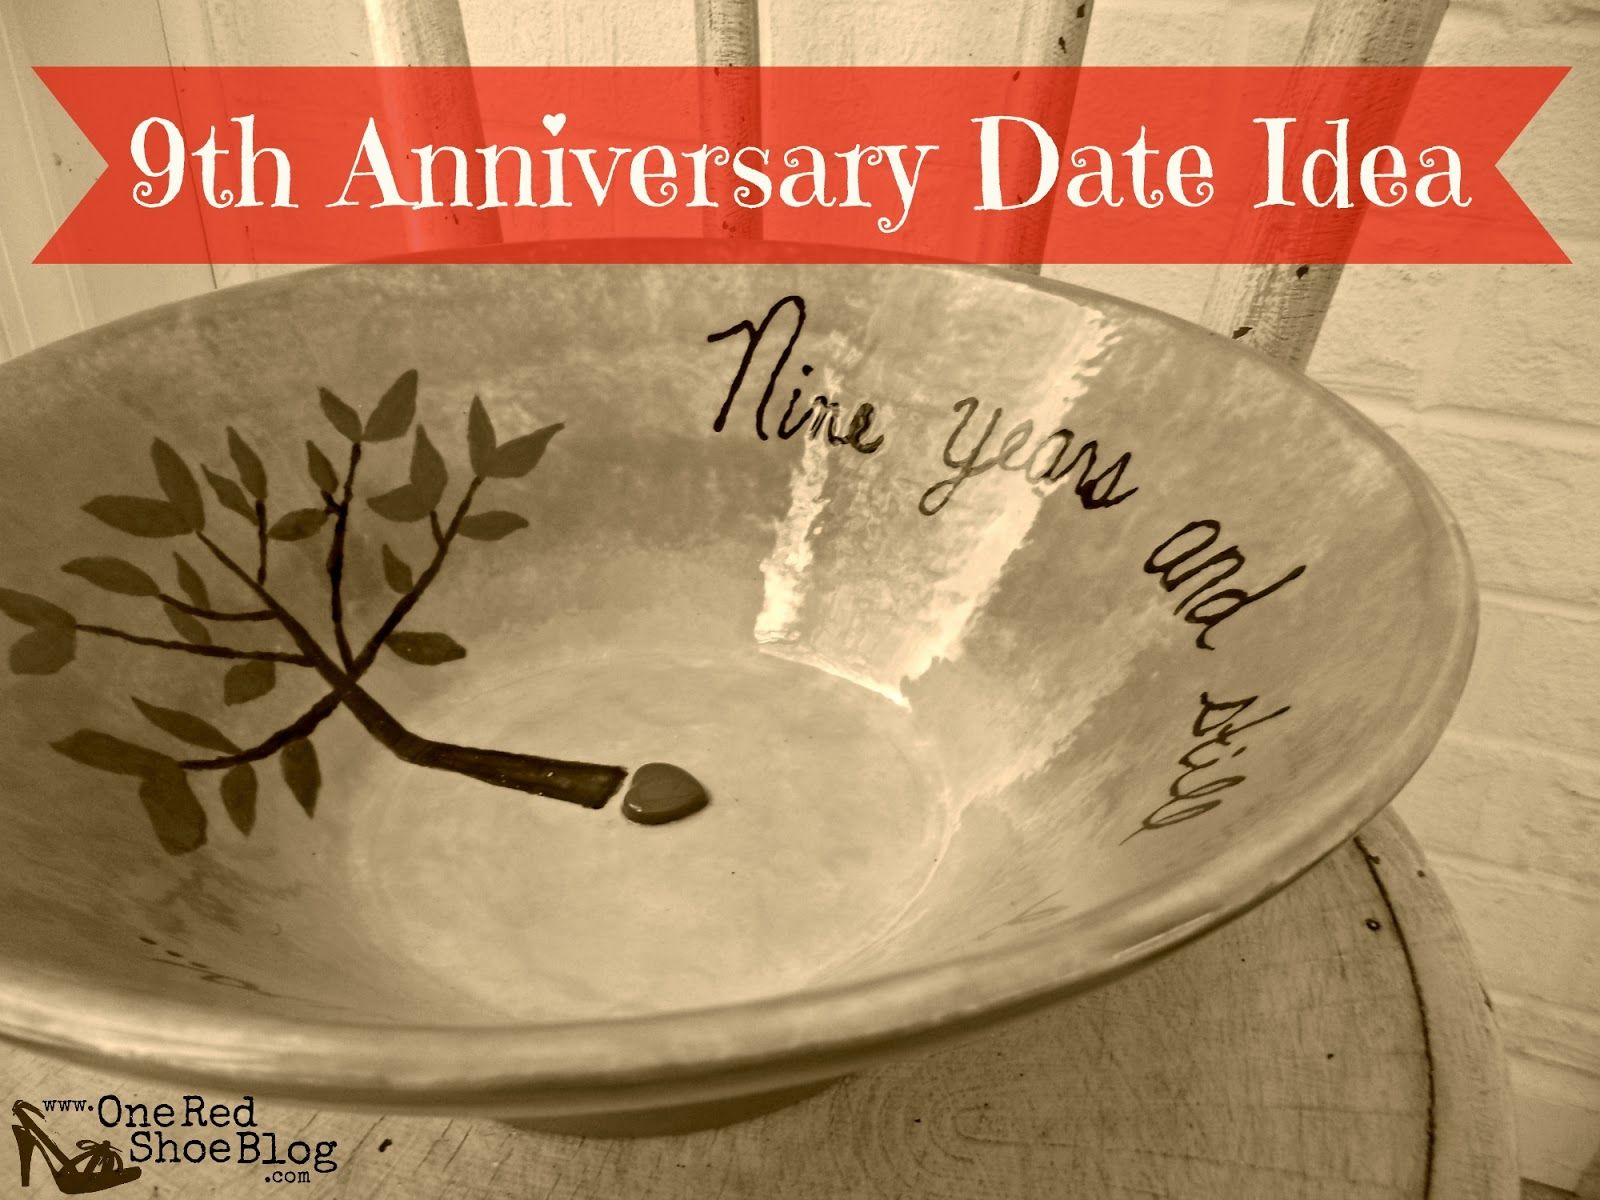 9th anniversary  pottery idea for anniversary date night  Marriage  9th wedding anniversary